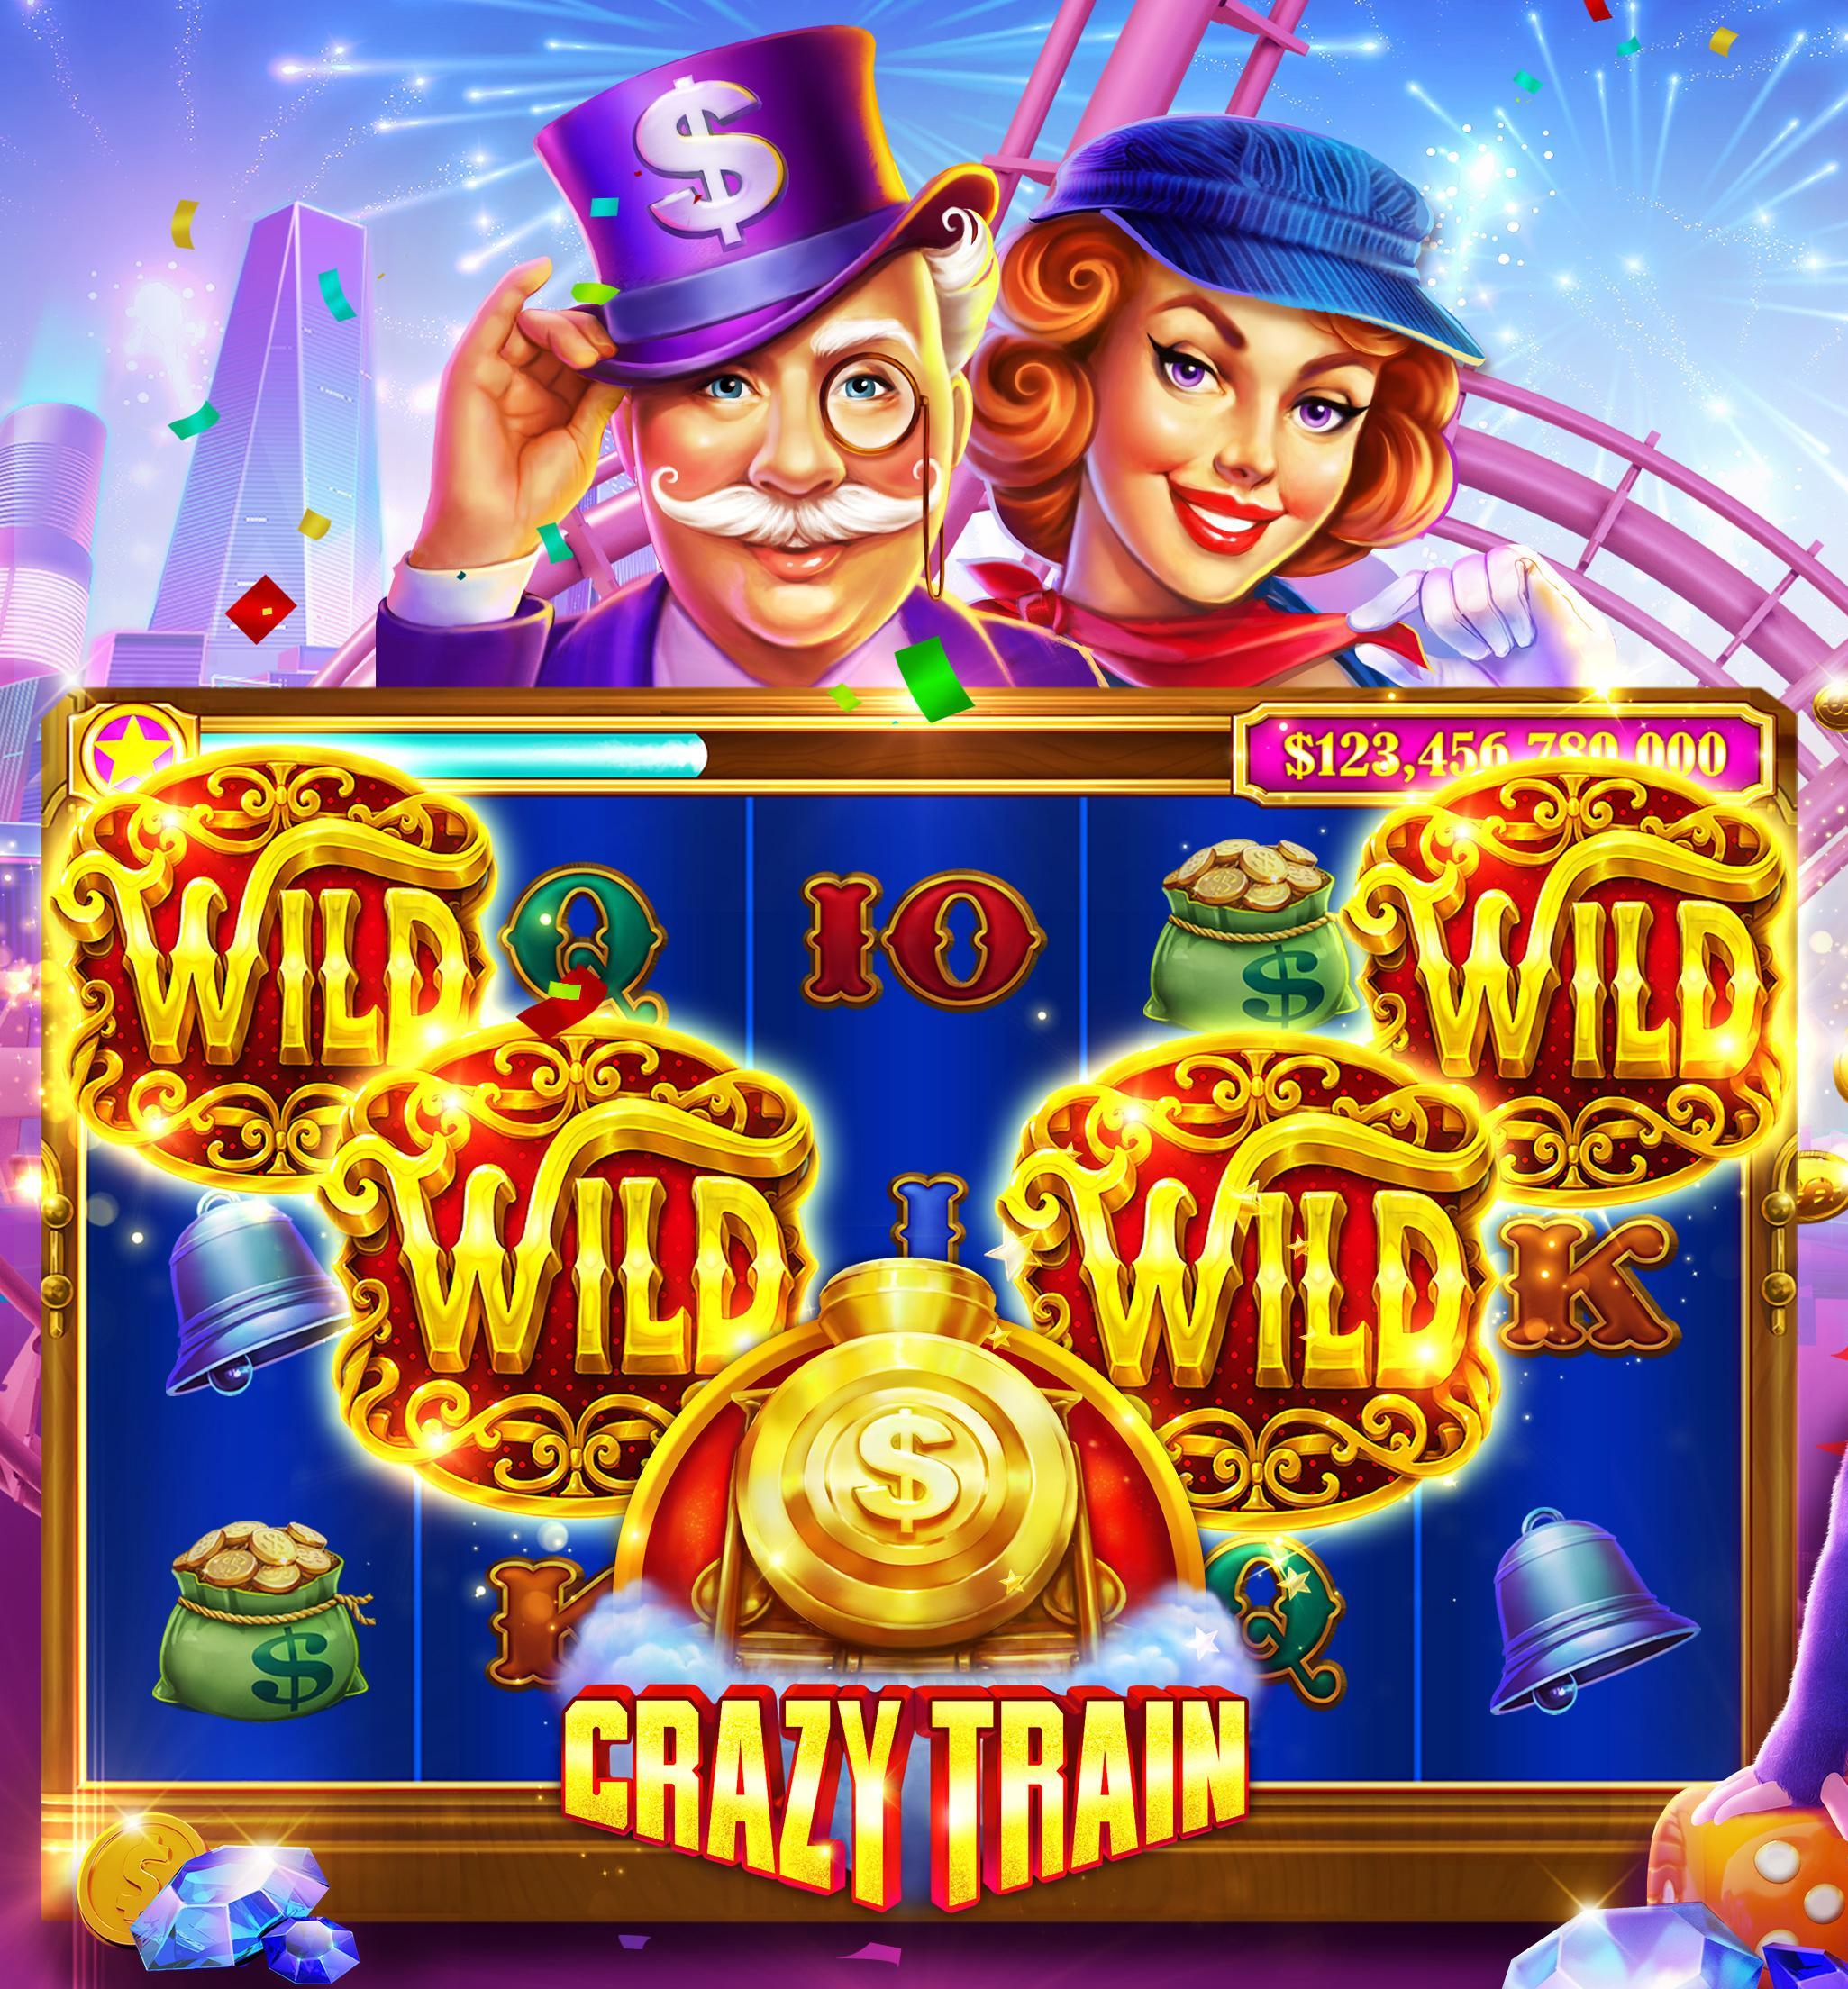 Slotomania Free Slots Casino Slot Machine Games For Android Apk Download